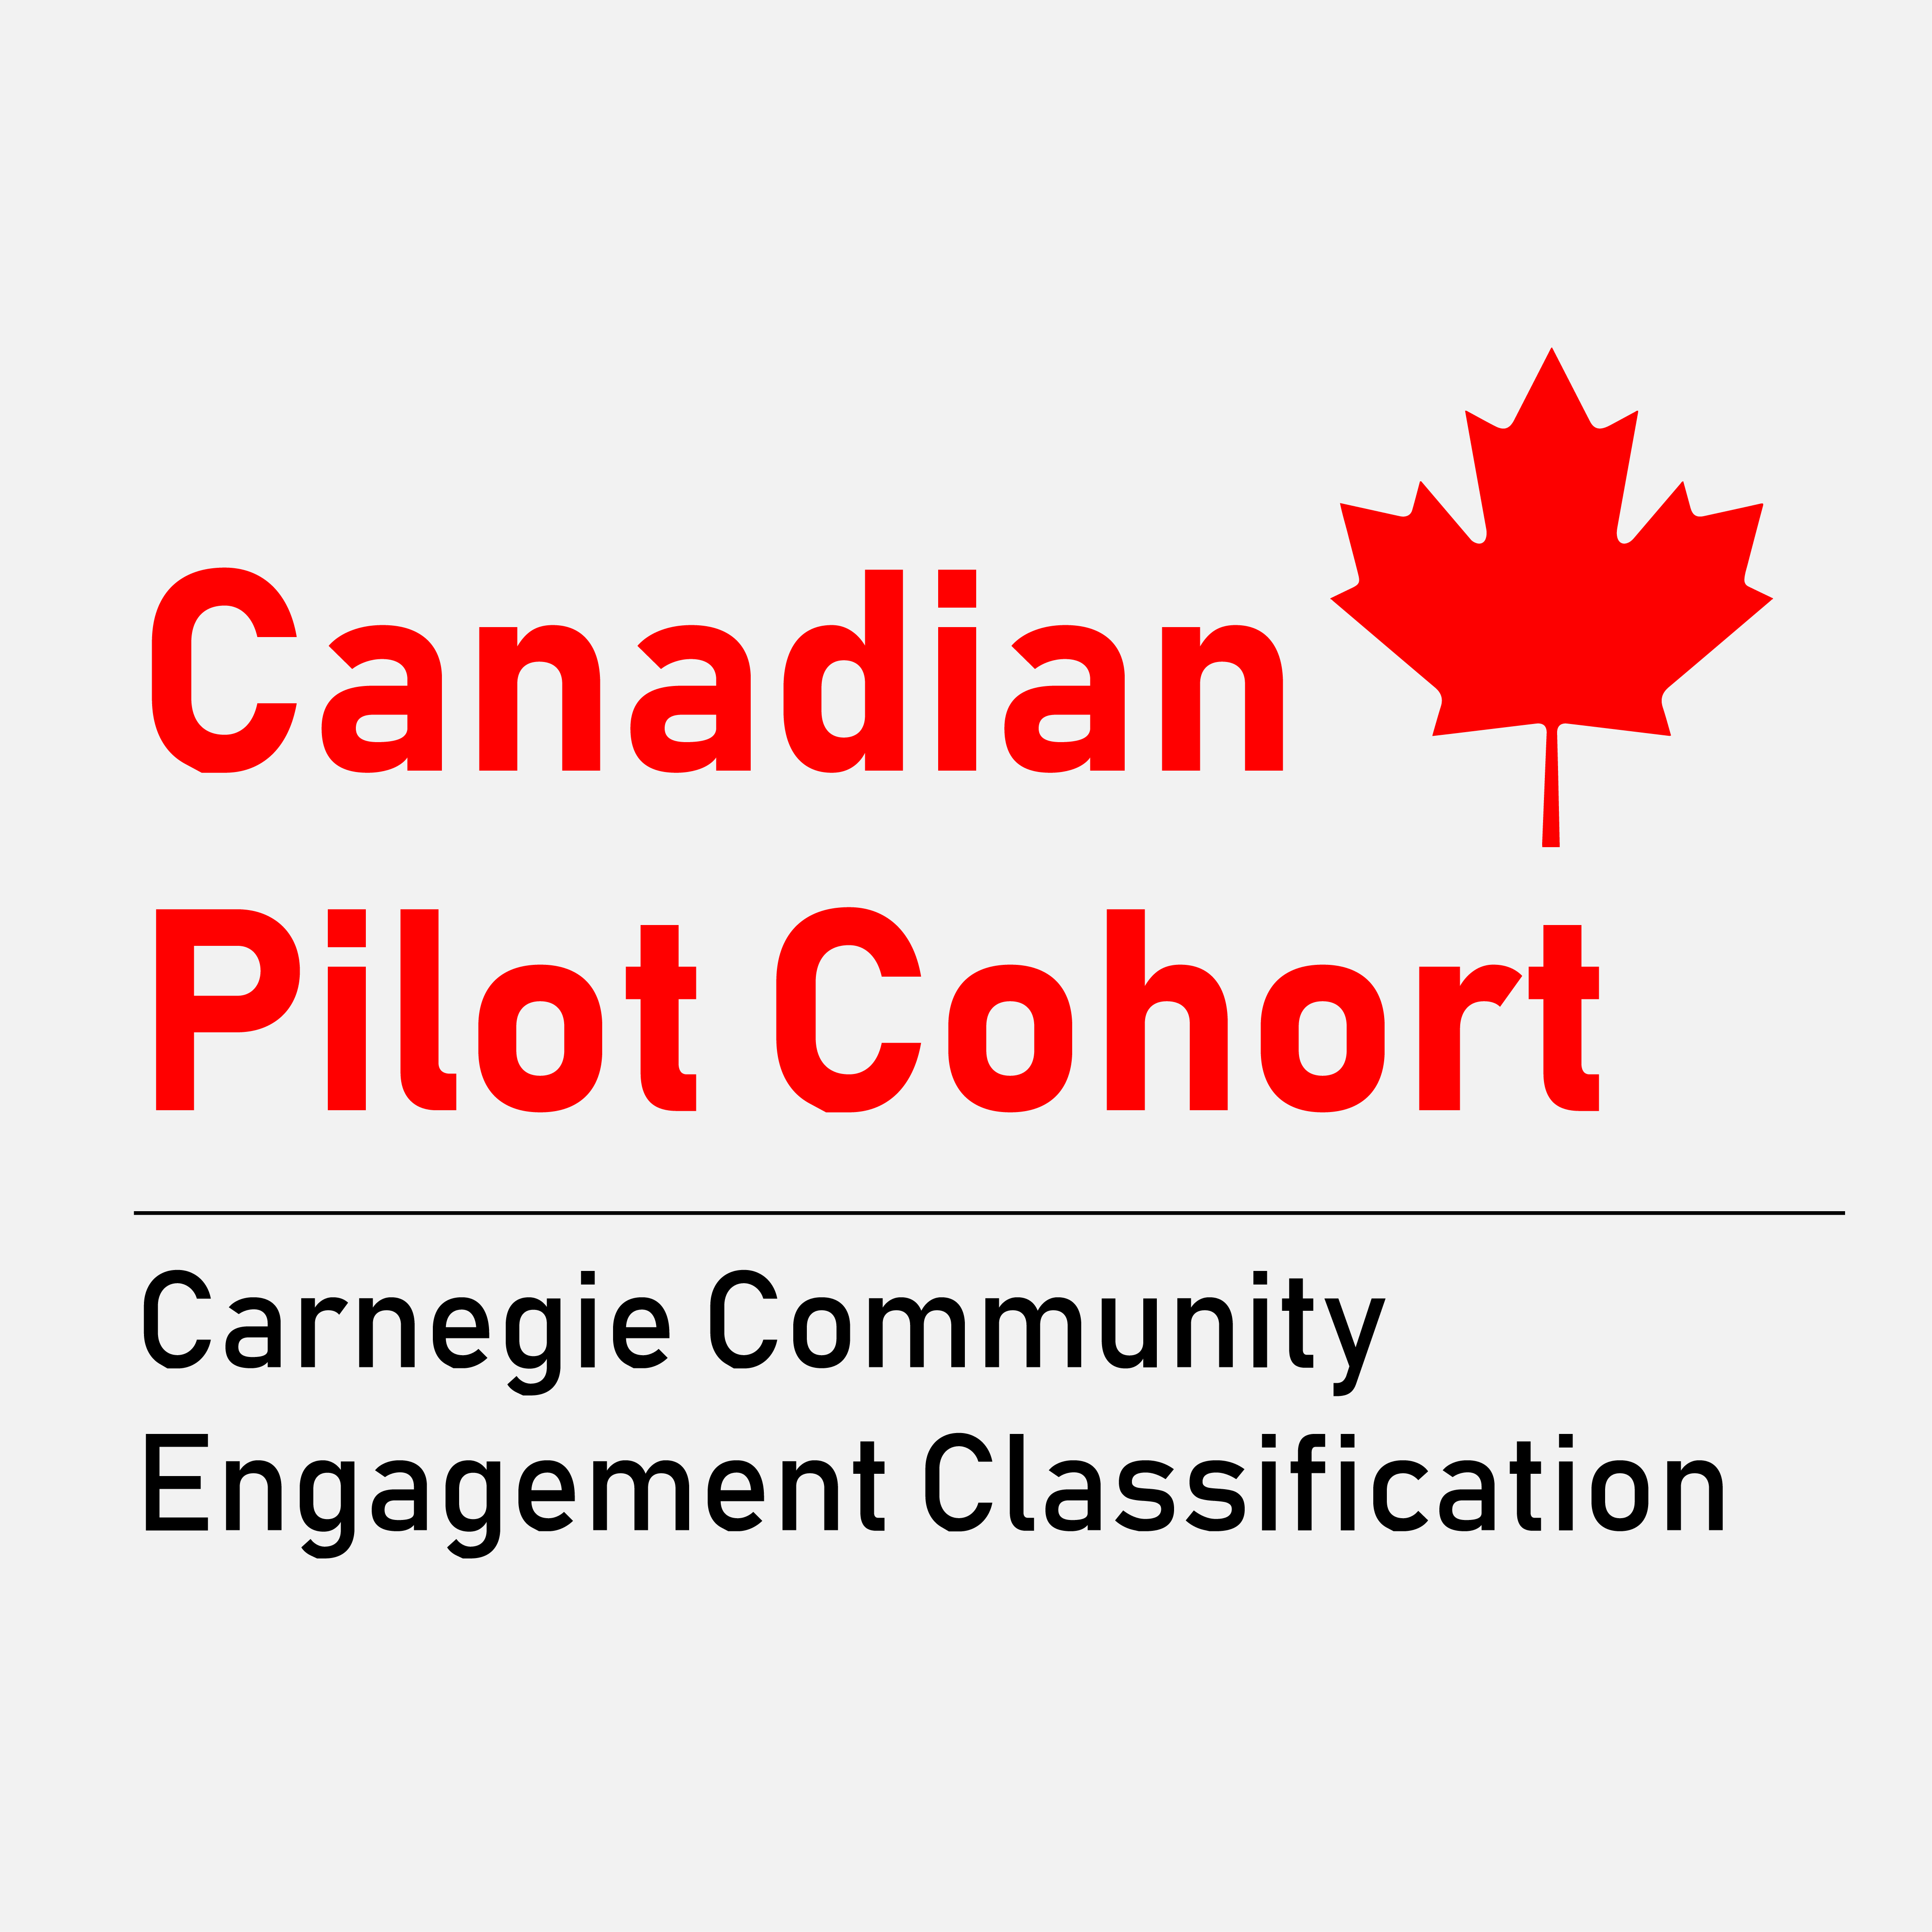 Logo with text: Canadian Pilot Cohort andCarnegie Community Engagement Classification underneath. Red maple leaf in top right corner of logo